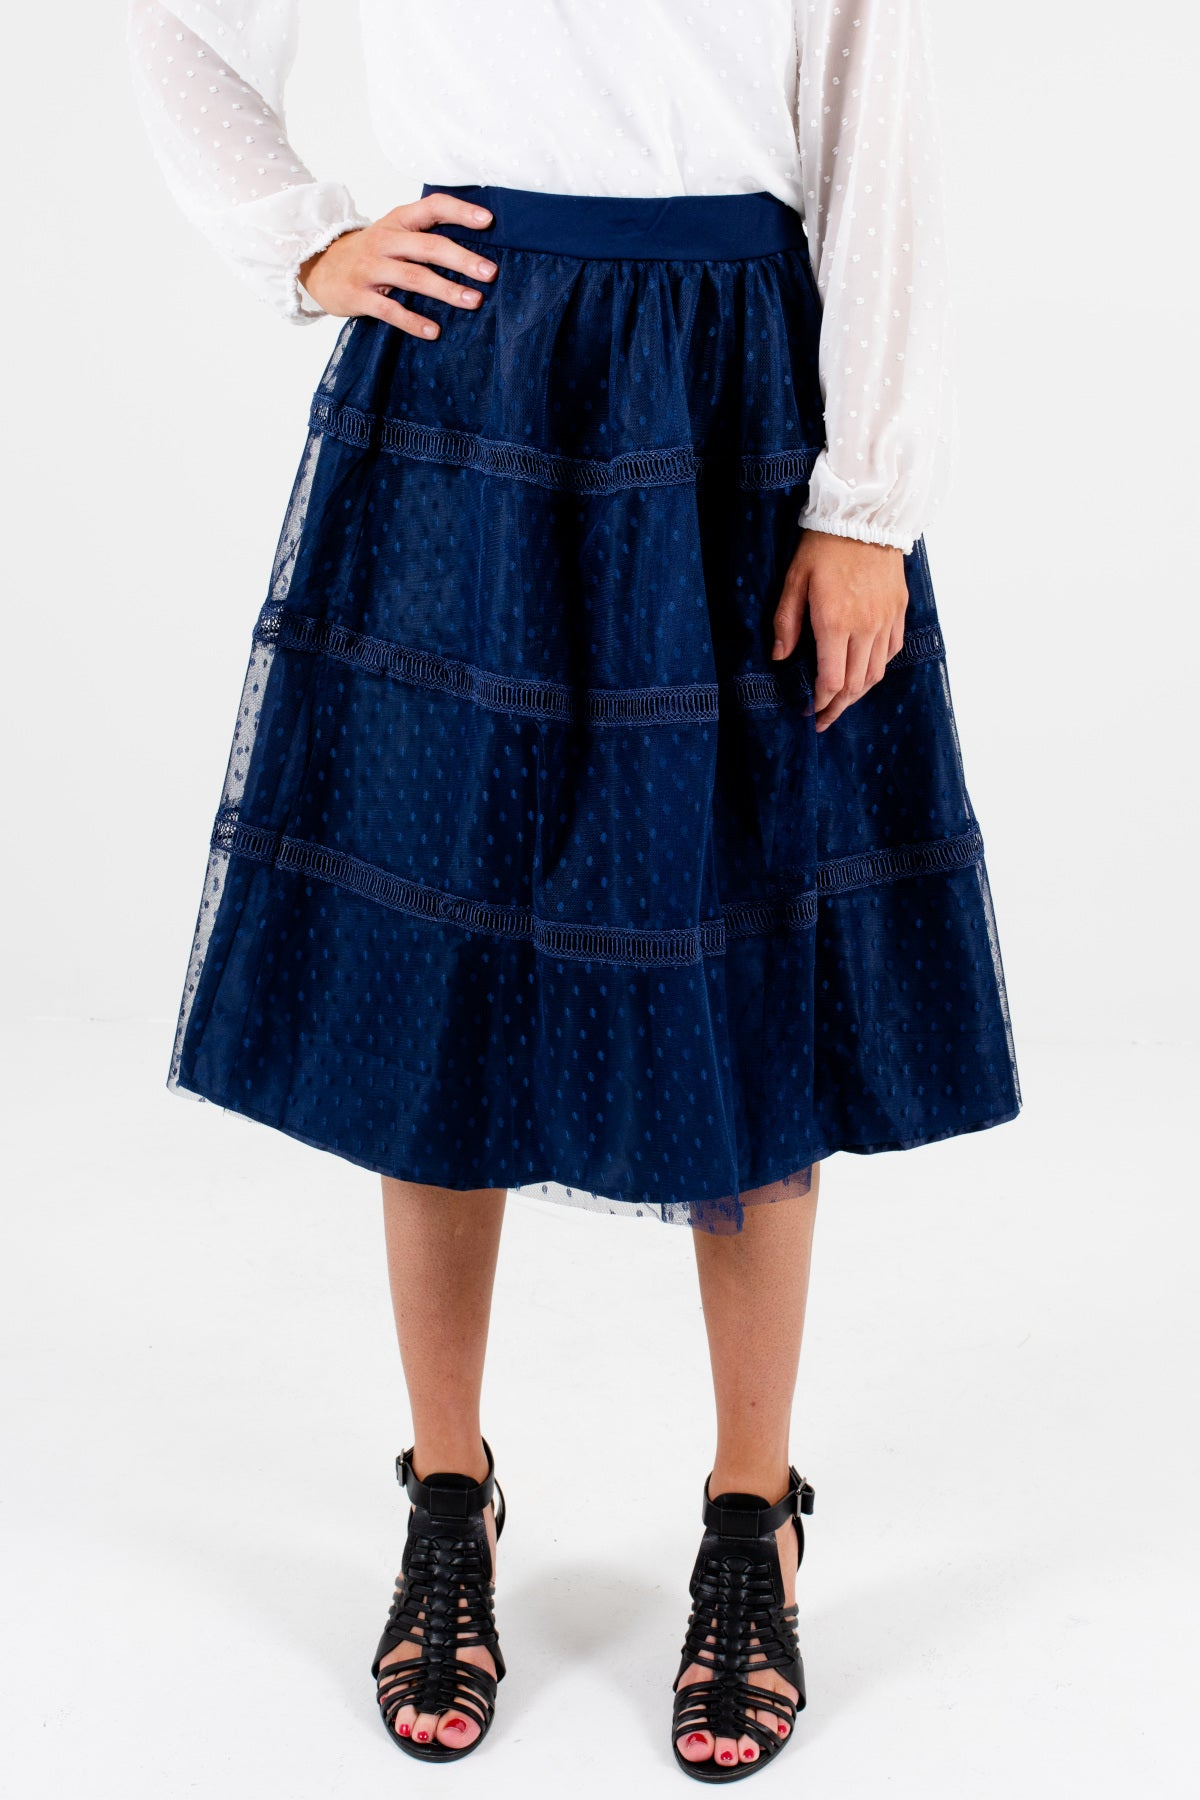 e91558a721 Navy Blue Polka Dot Tulle Ladder Lace Fully Lined Knee-Length Skirts